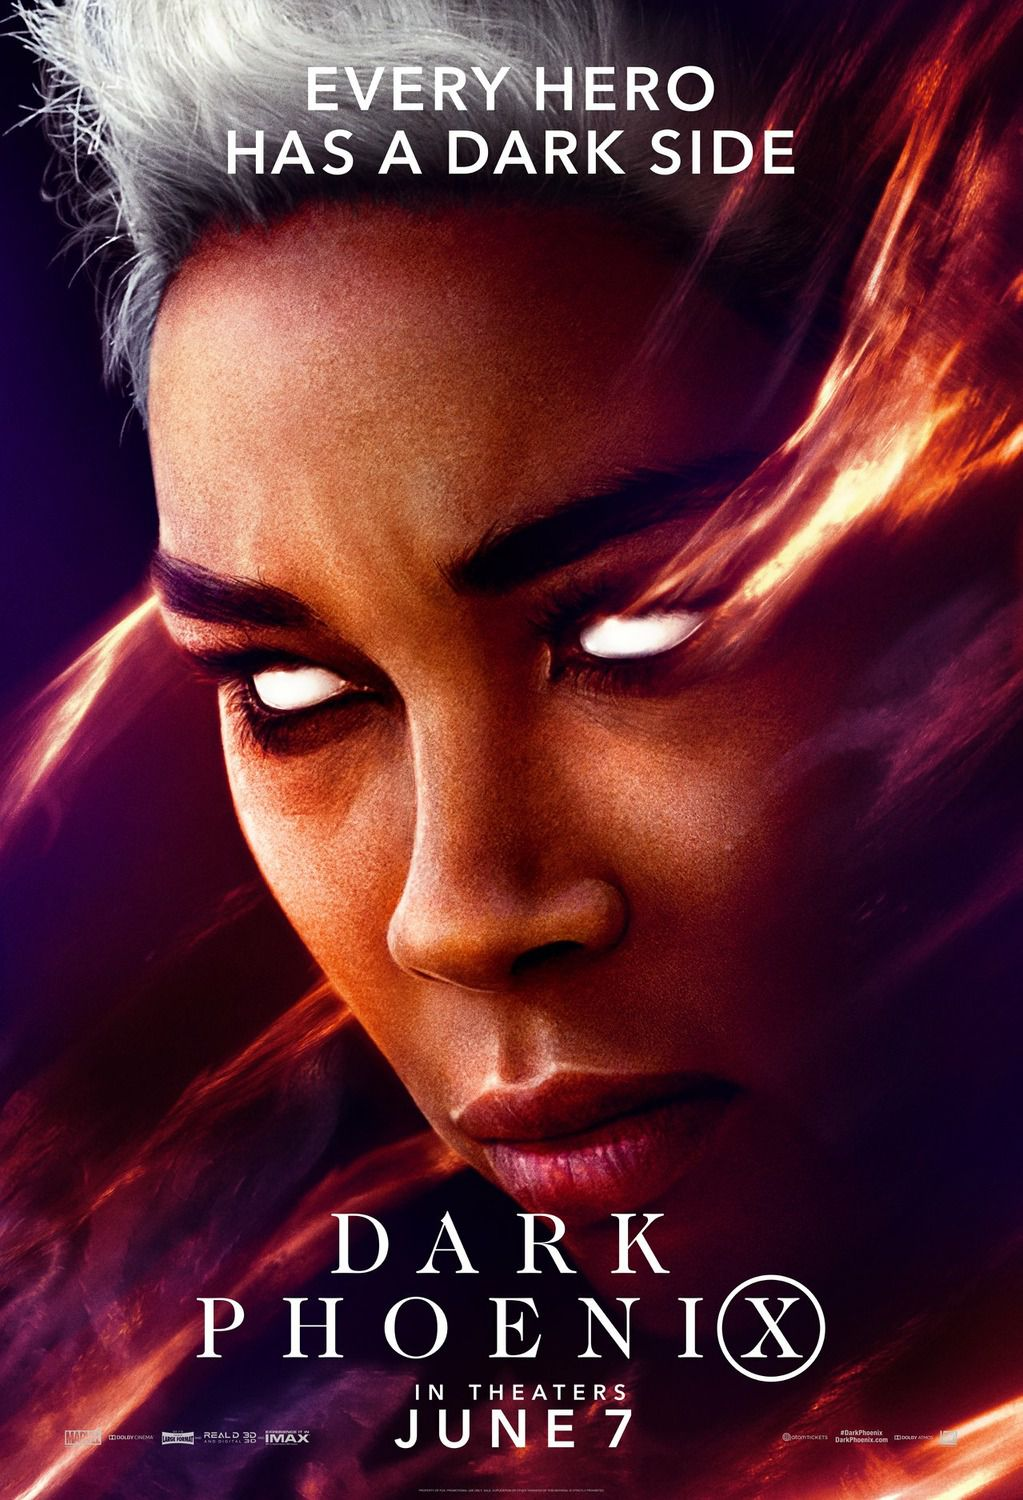 Alexandra Shipp as Tempest